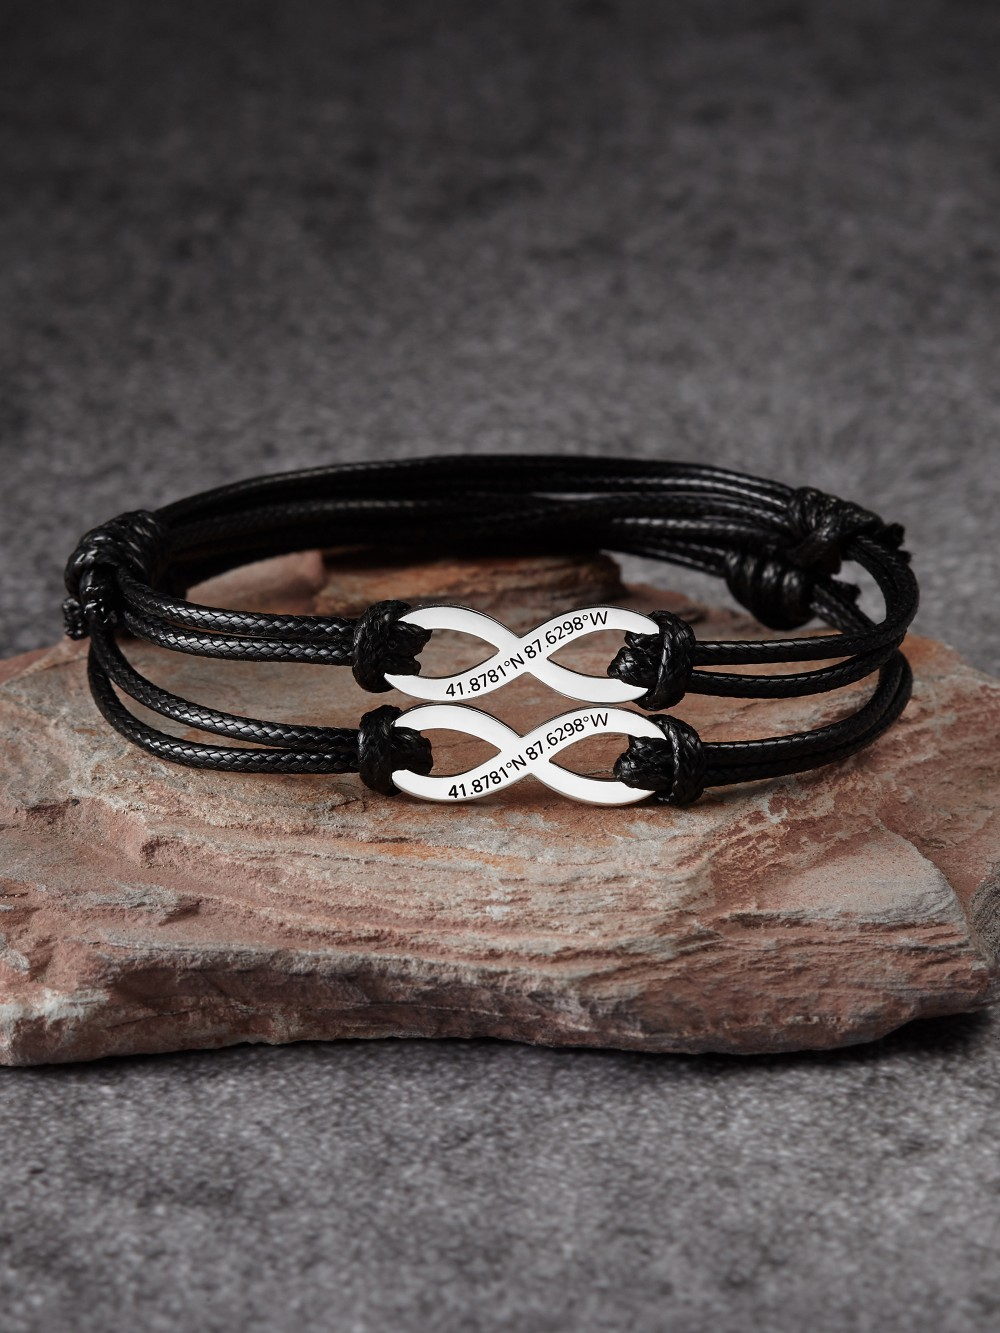 Couple's Infinity Bracelet with Coordinates